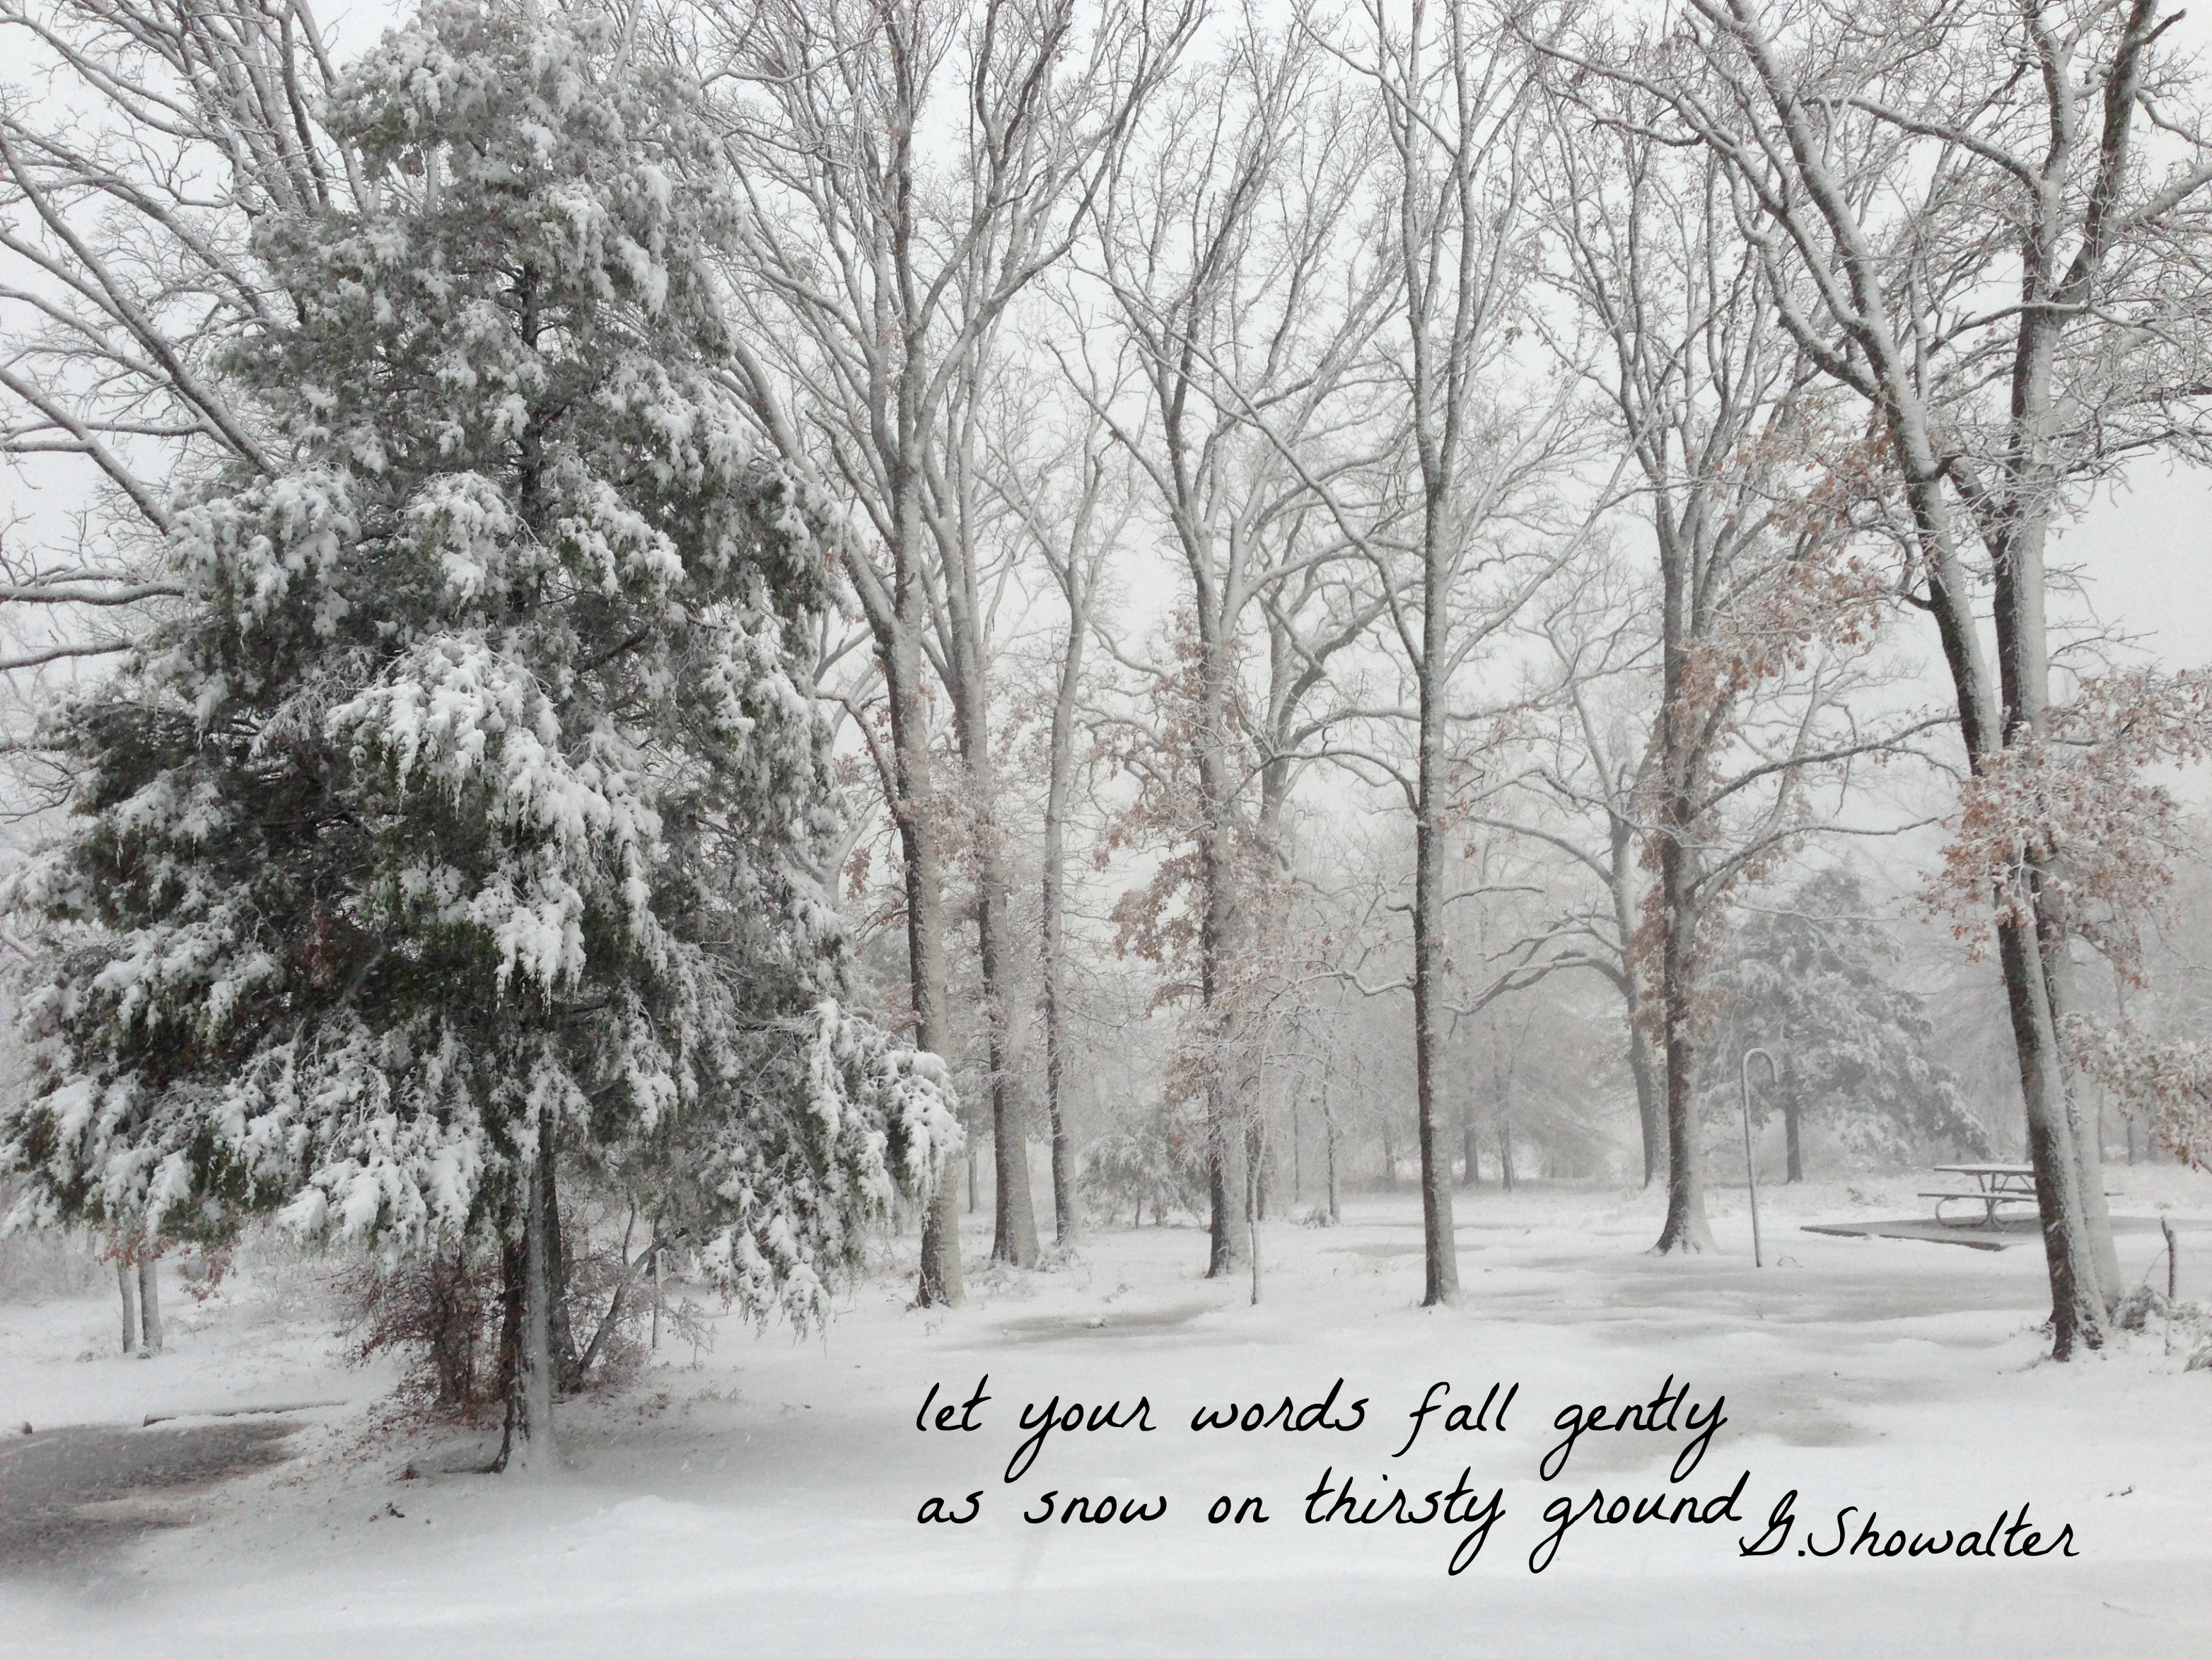 Snowfall in woods with quote